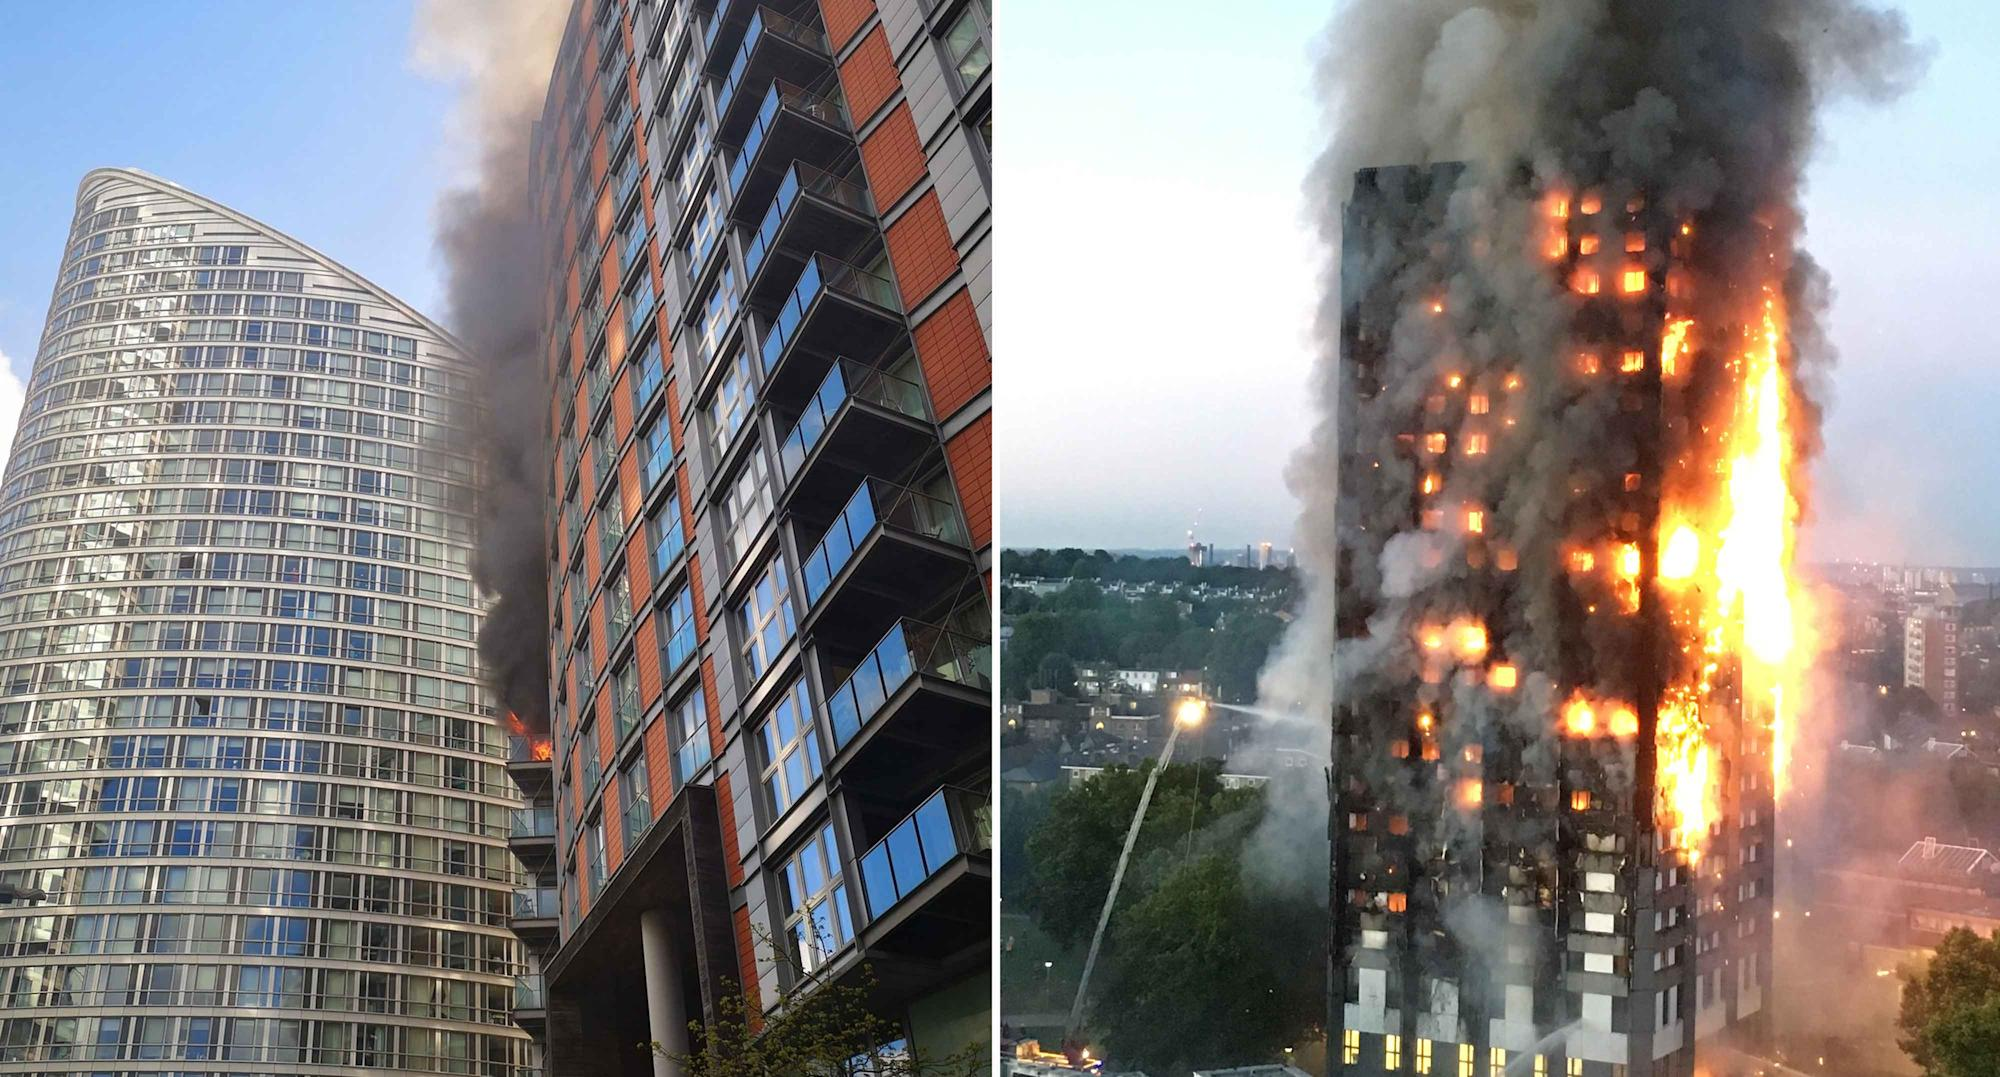 How can a building with Grenfell-style cladding go up in flames four years after Grenfell?